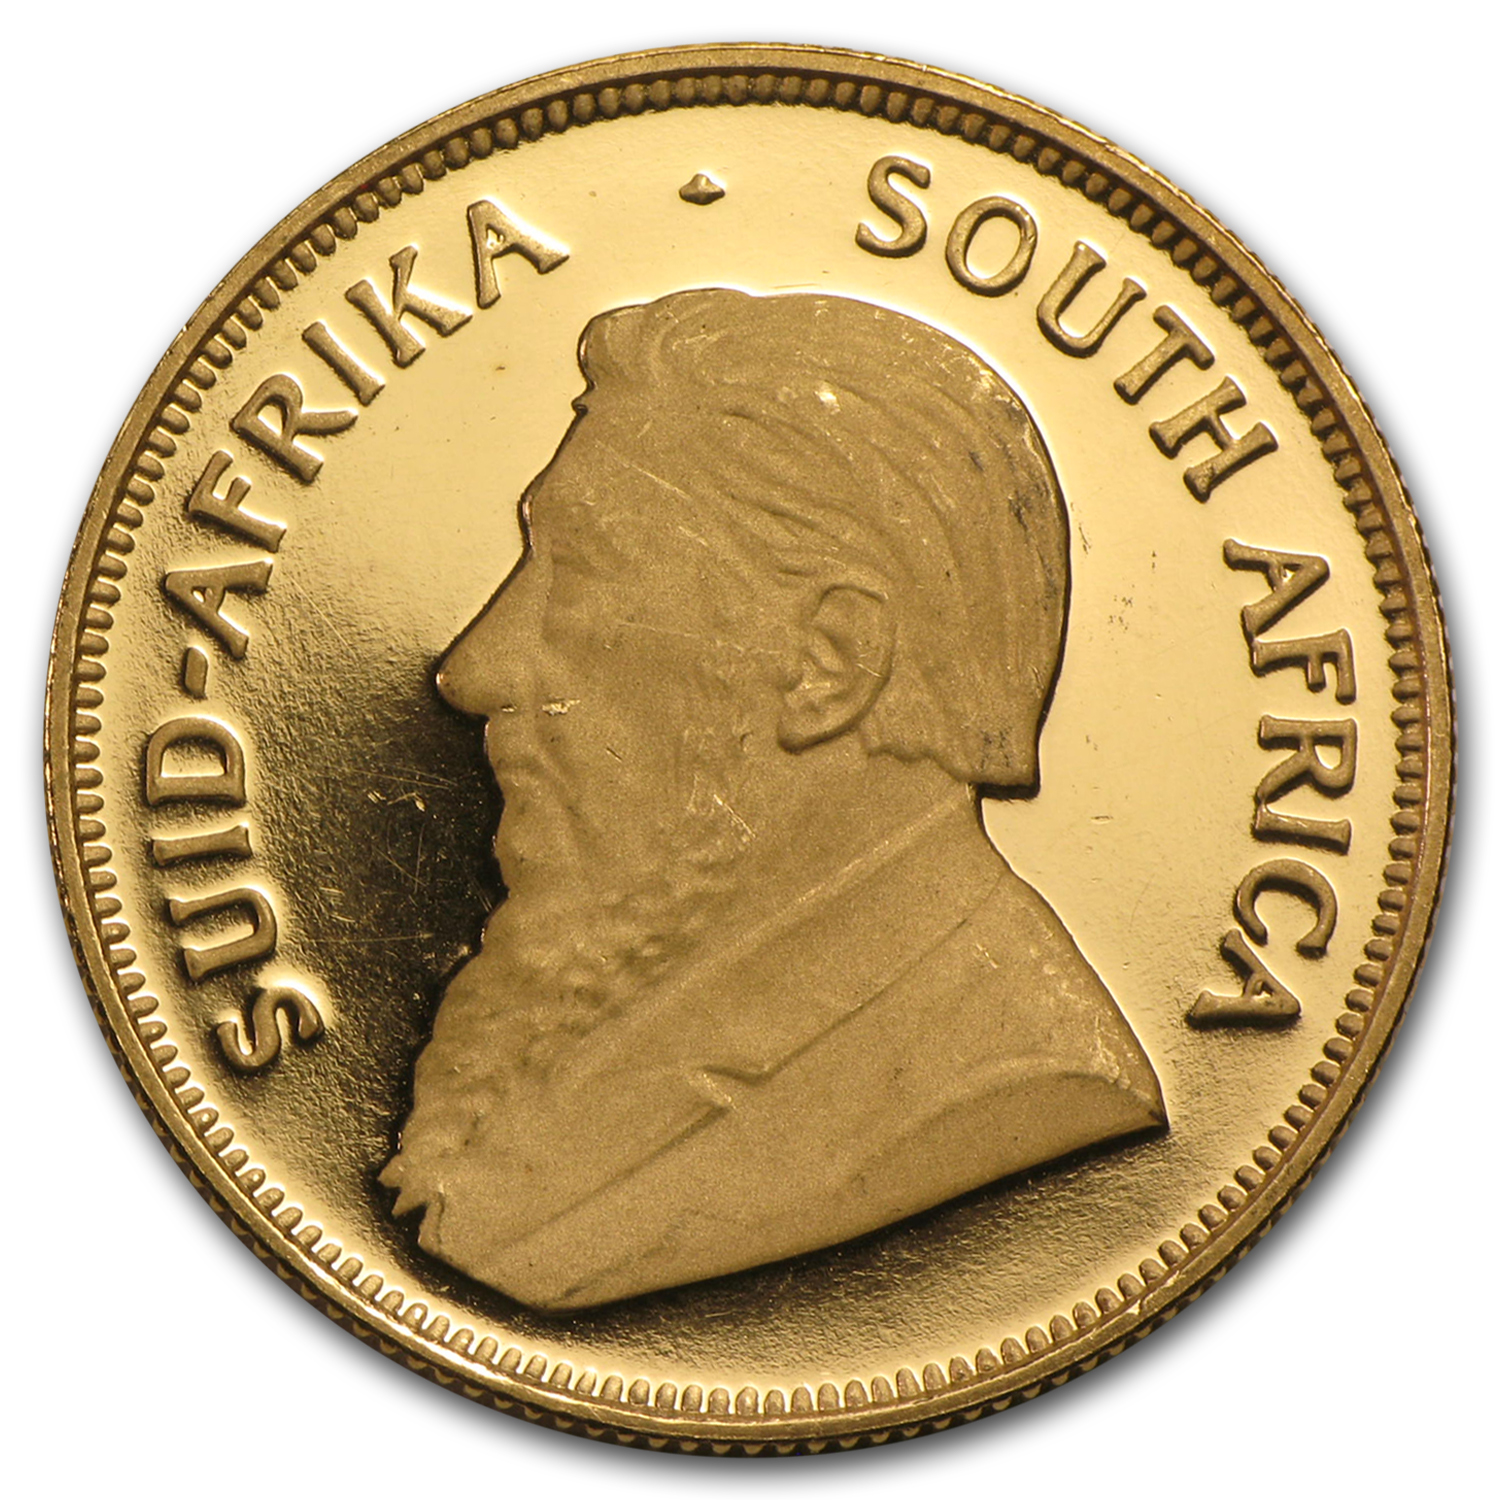 1997 South Africa 1/2 oz Proof Gold Krugerrand (30th Anniv)